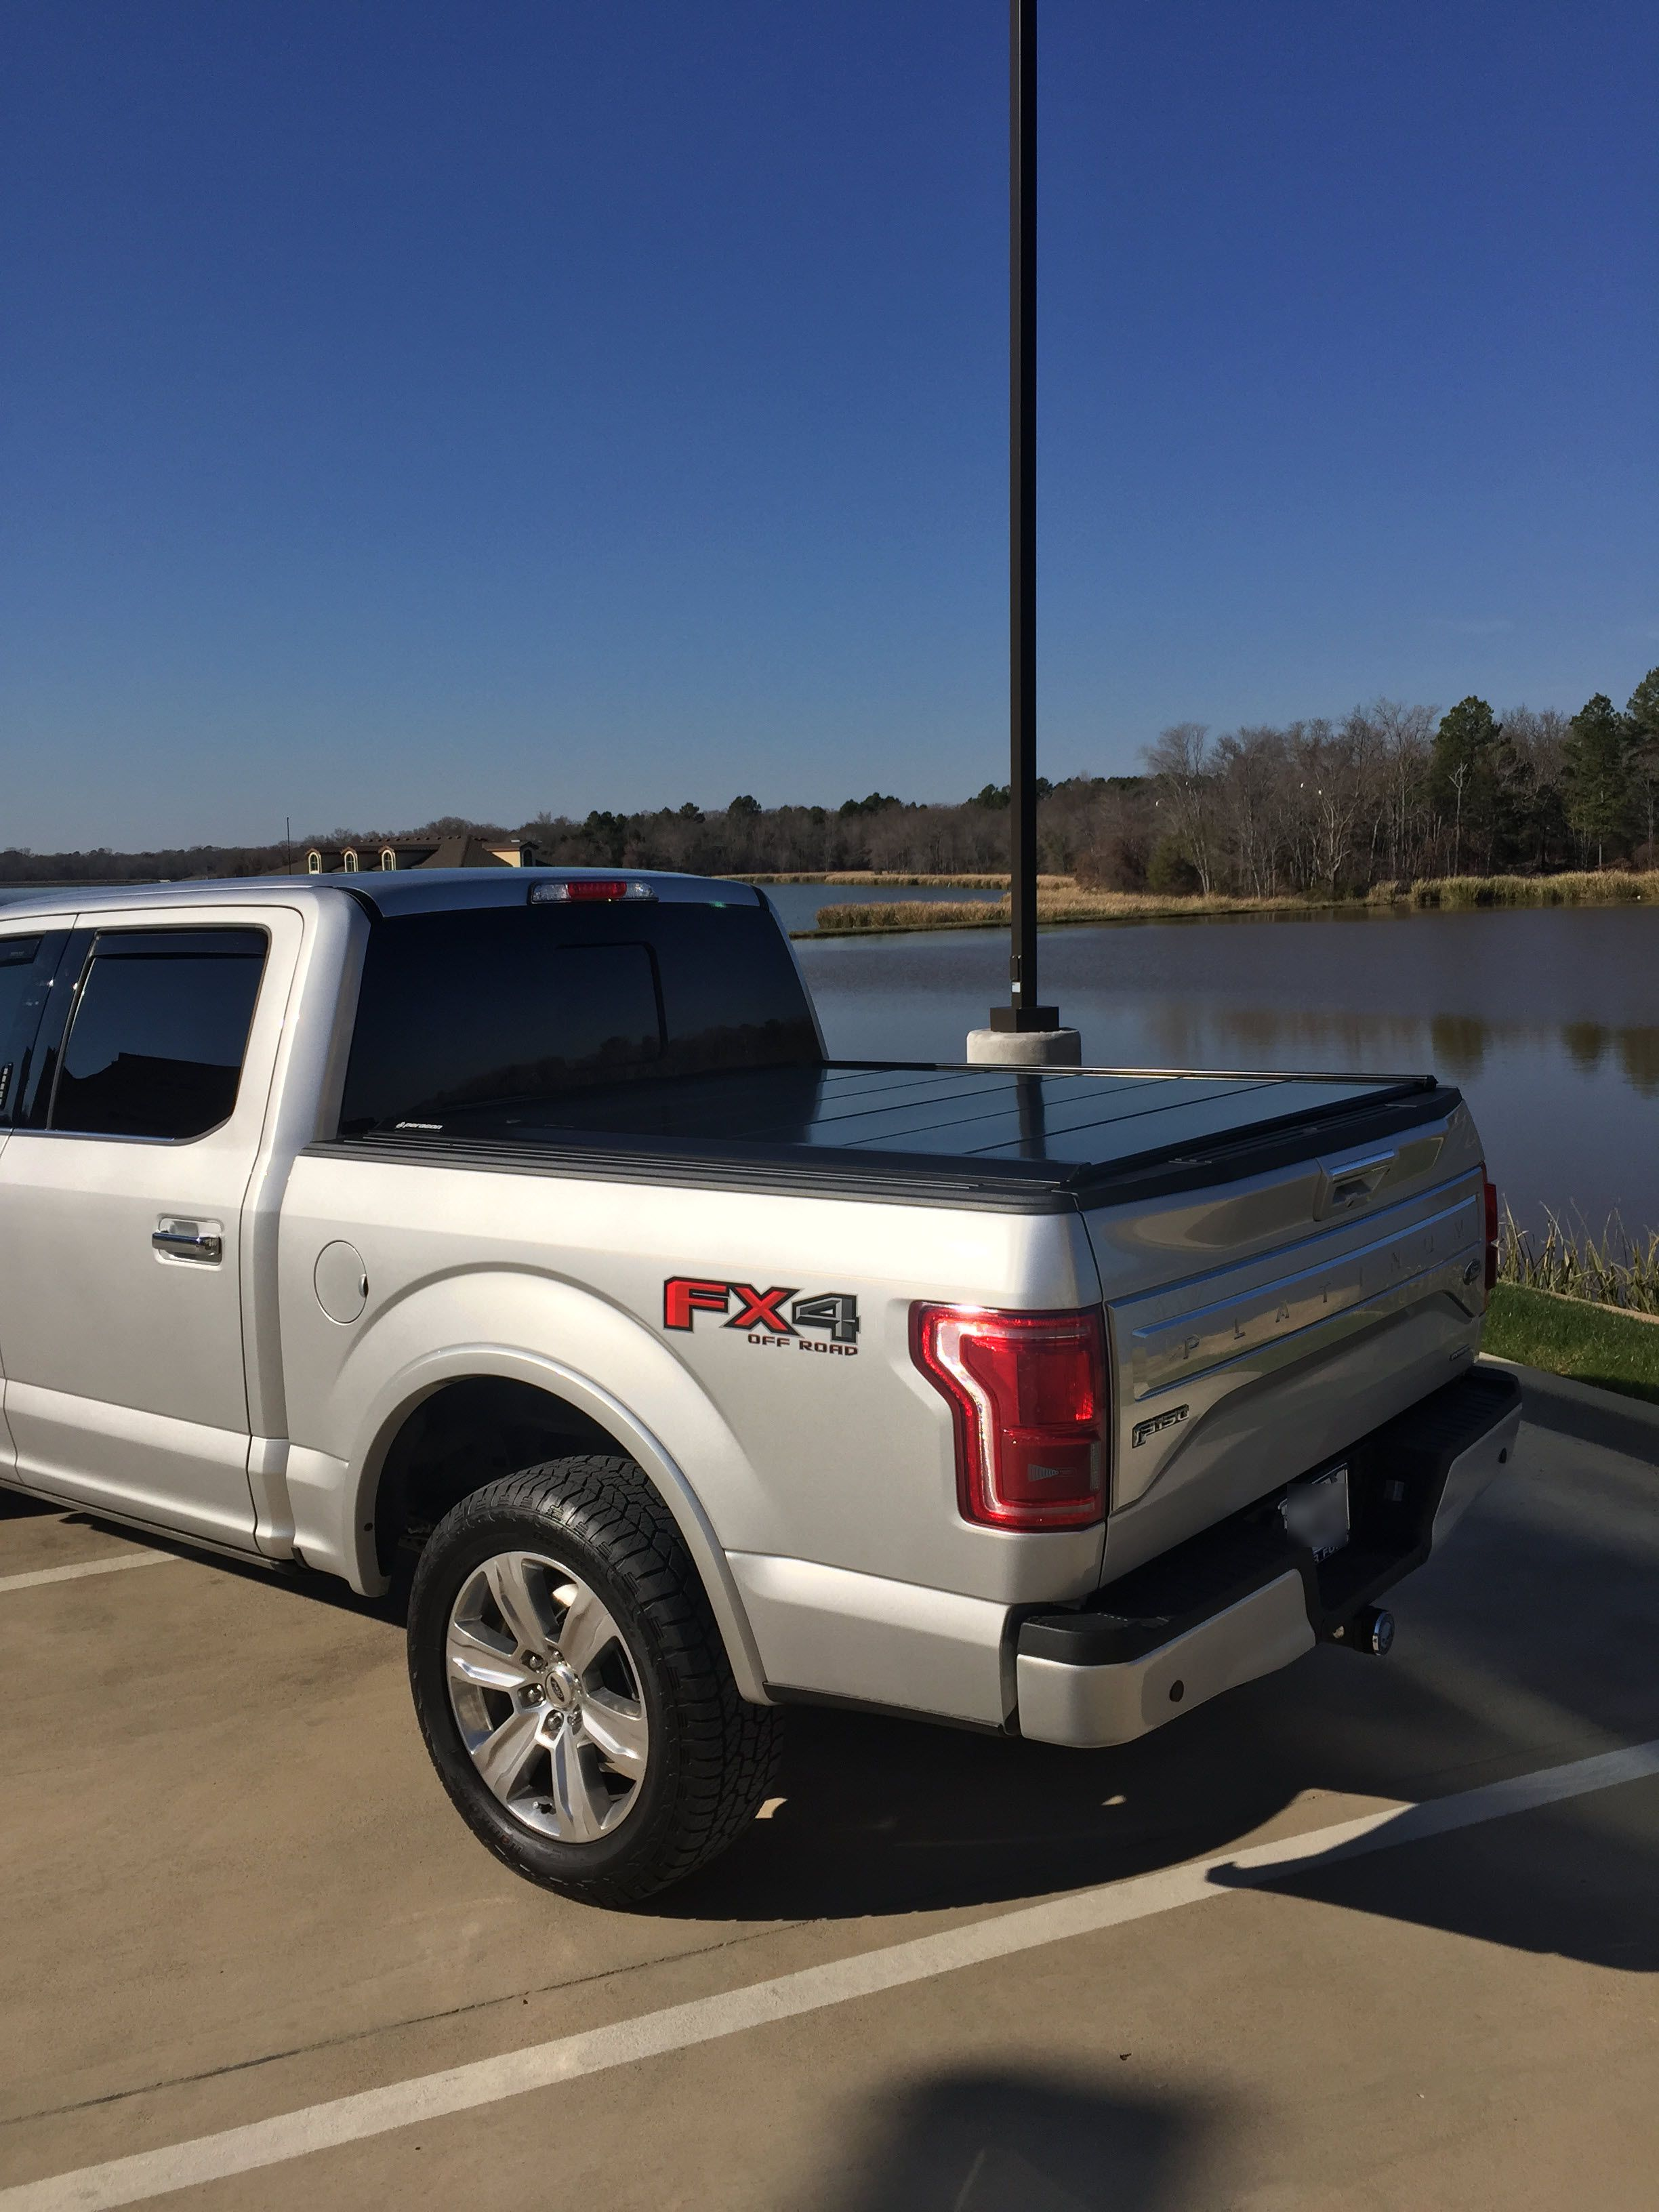 Ford F 150 Retractable Tonneau Cover On An Ingot Silver